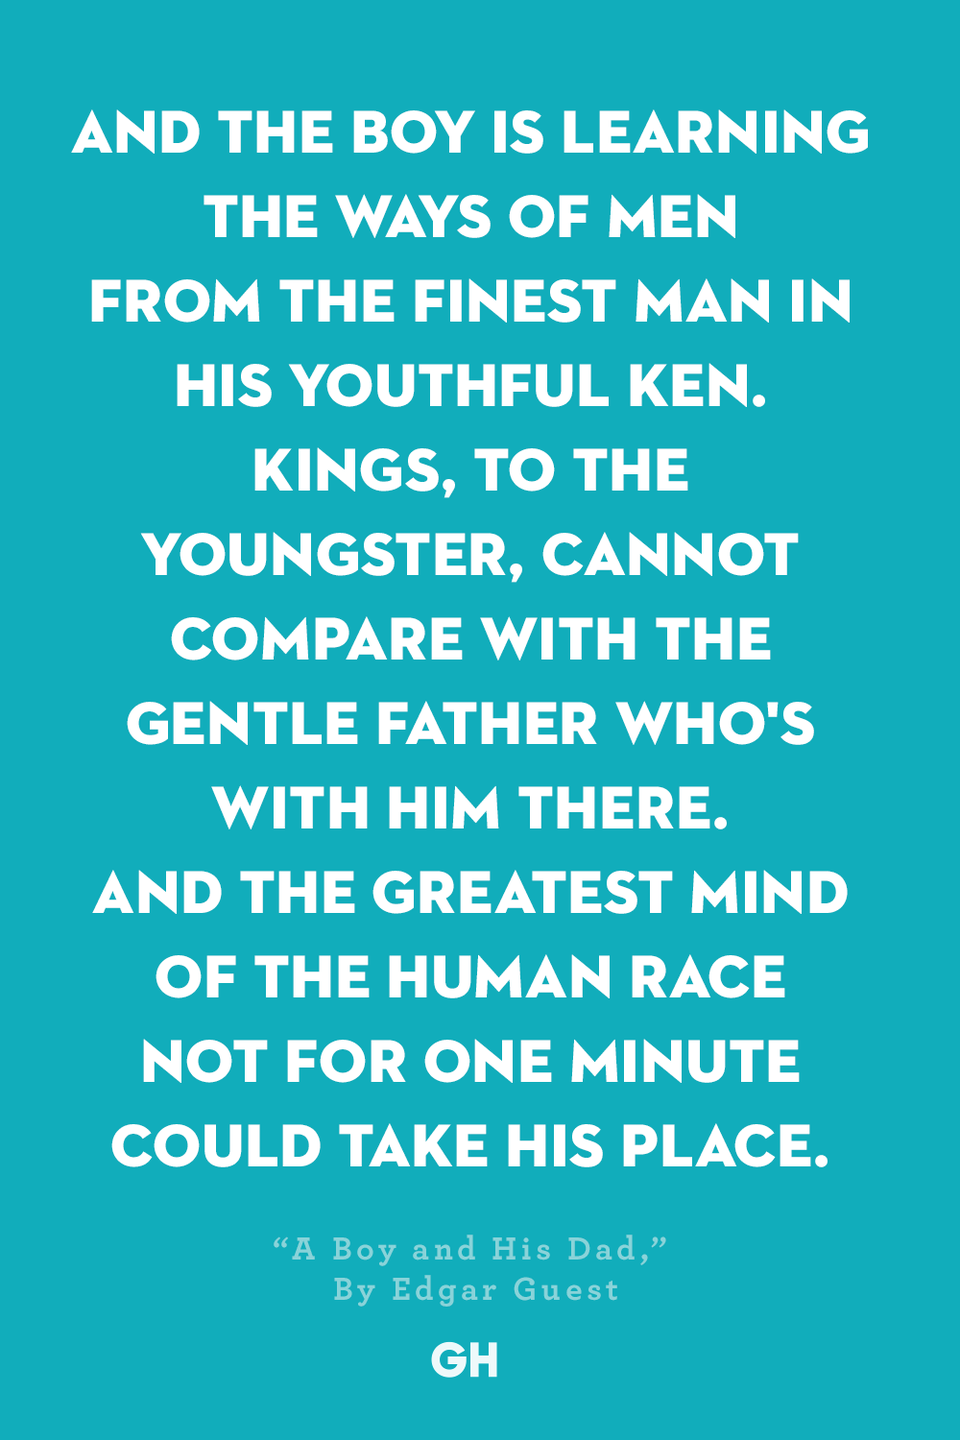 <p>And the boy is learning the ways of men</p><p>From the finest man in his youthful ken.</p><p>Kings, to the youngster, cannot compare</p><p>With the gentle father who's with him there.</p><p>And the greatest mind of the human race</p><p>Not for one minute could take his place.</p>